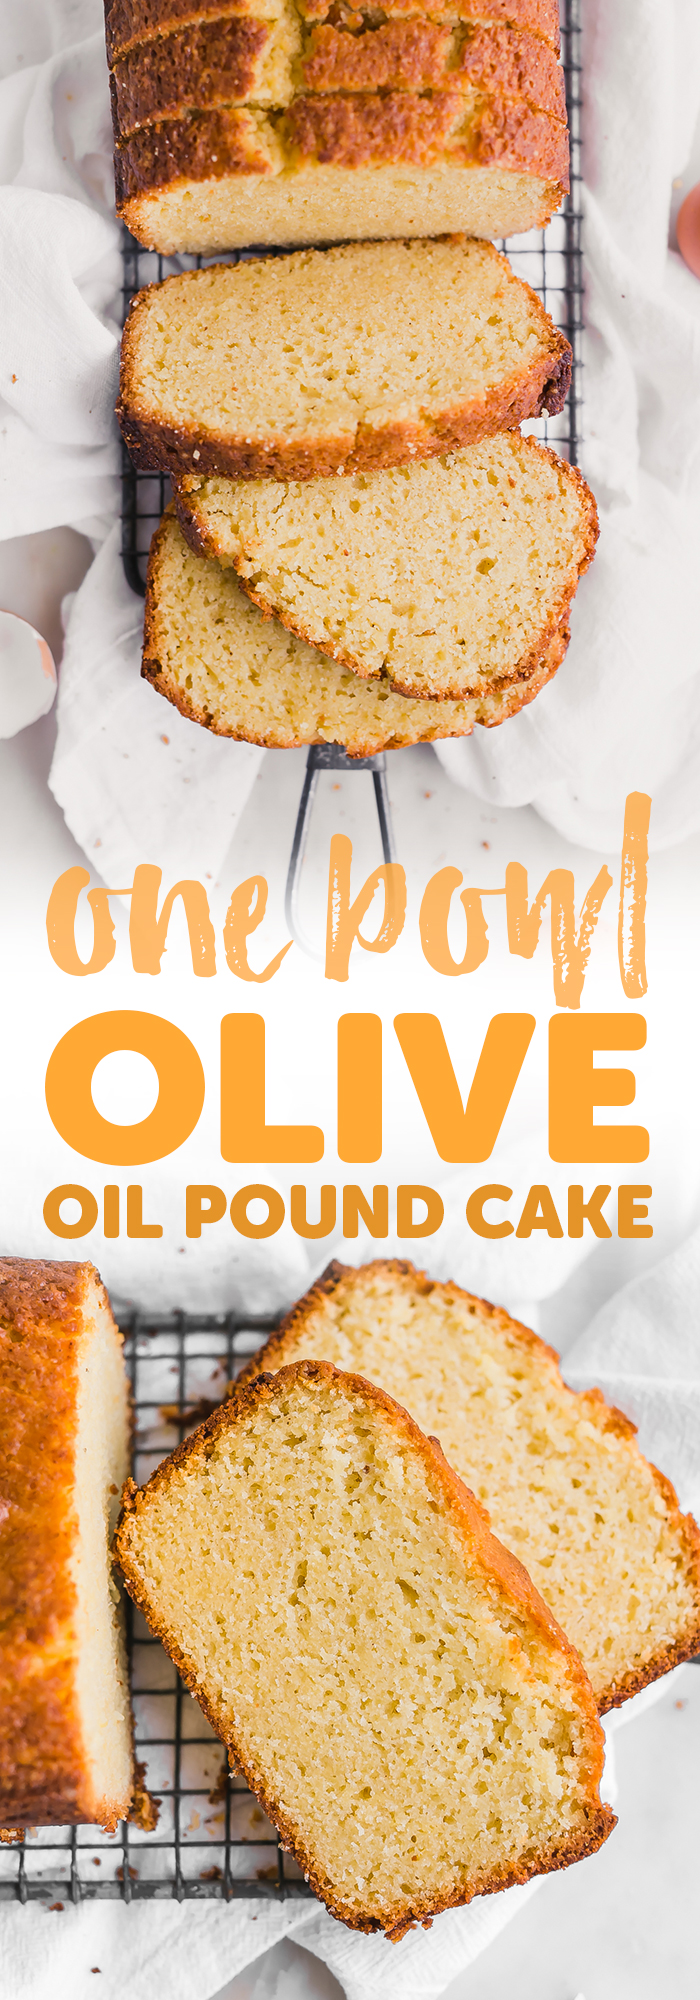 One Bowl Lemon Olive Oil Pound Cake - Learn how to make the easiest lemon olive oil pound cake in just one bowl! It takes 5 minutes to whisk together thats all! #oliveoilpoundcake #poundcake #lemonoliveoilpoundcake | Little Spice Jar